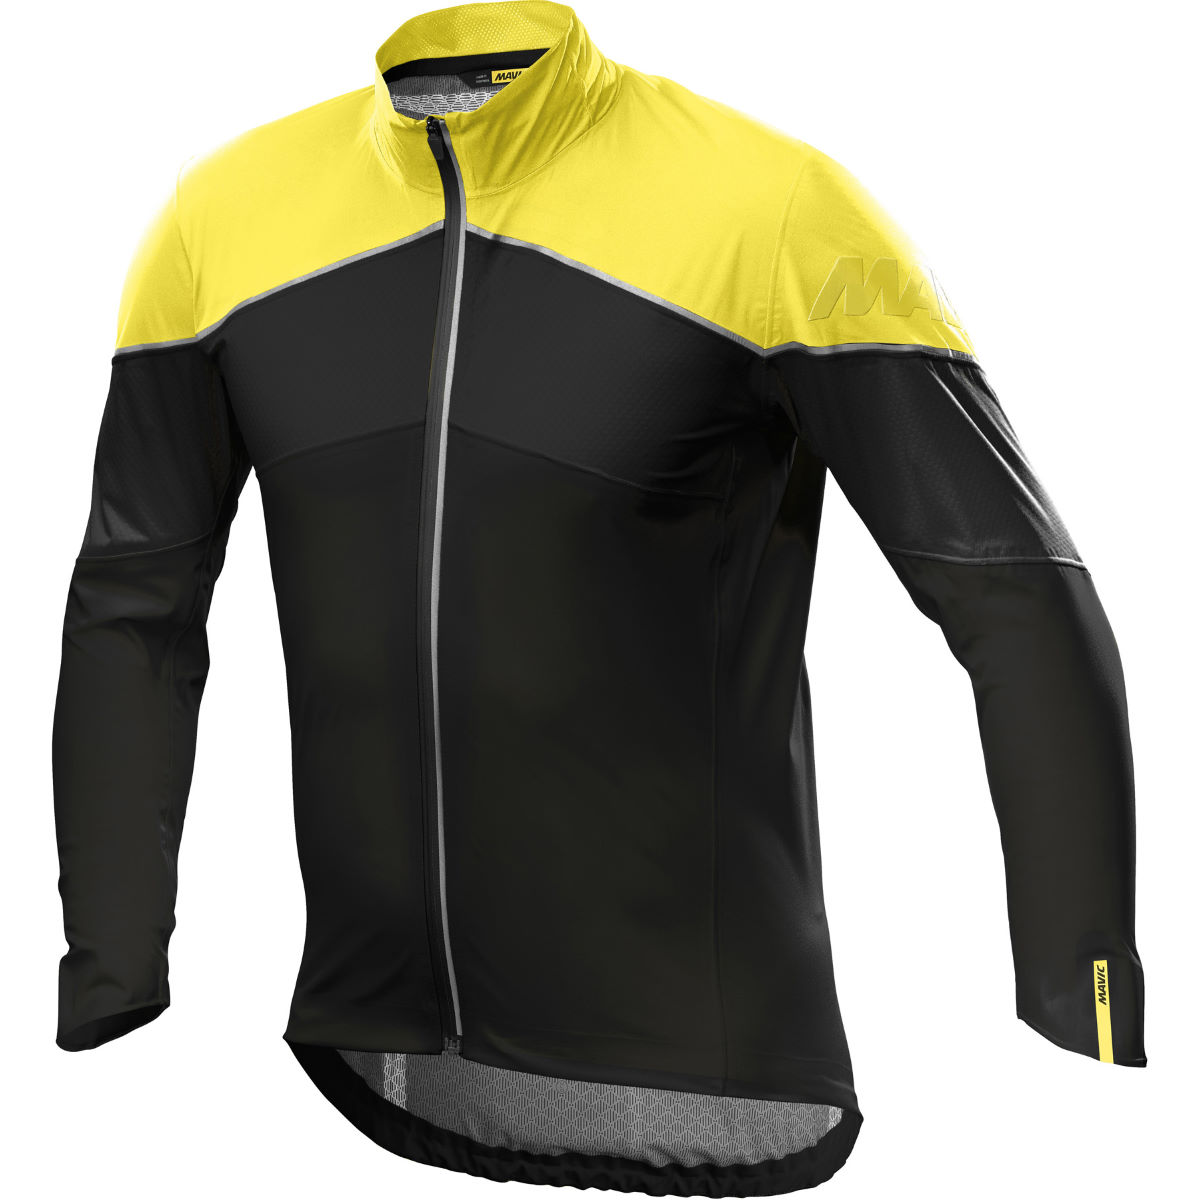 Veste Mavic Cosmic H20 SL - M Yellow Mavic/Black  Vestes